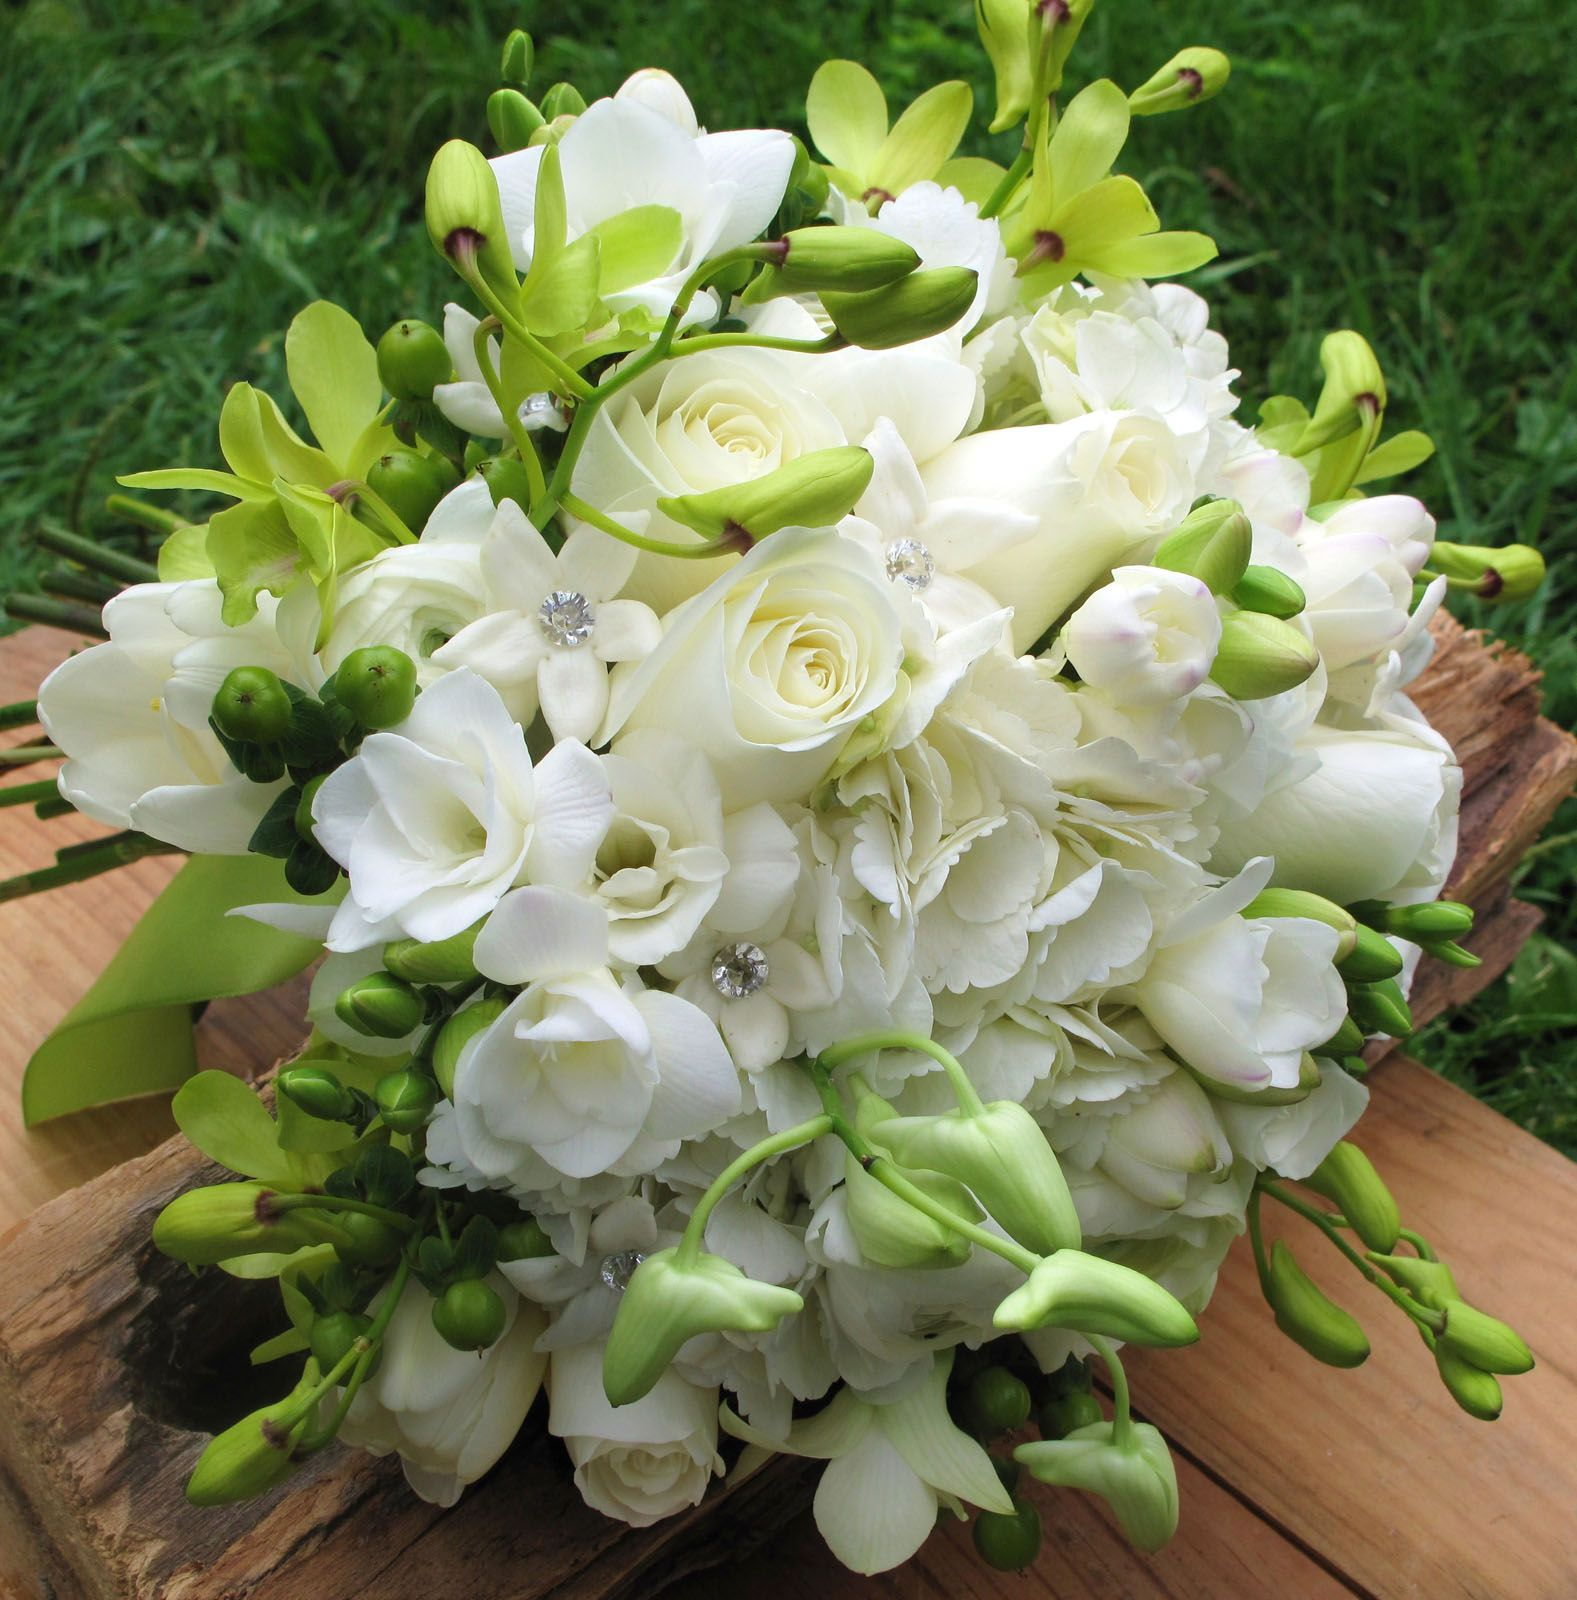 Vermont Wedding Flowers: White Roses And Green Orchids With Stephanotis For A